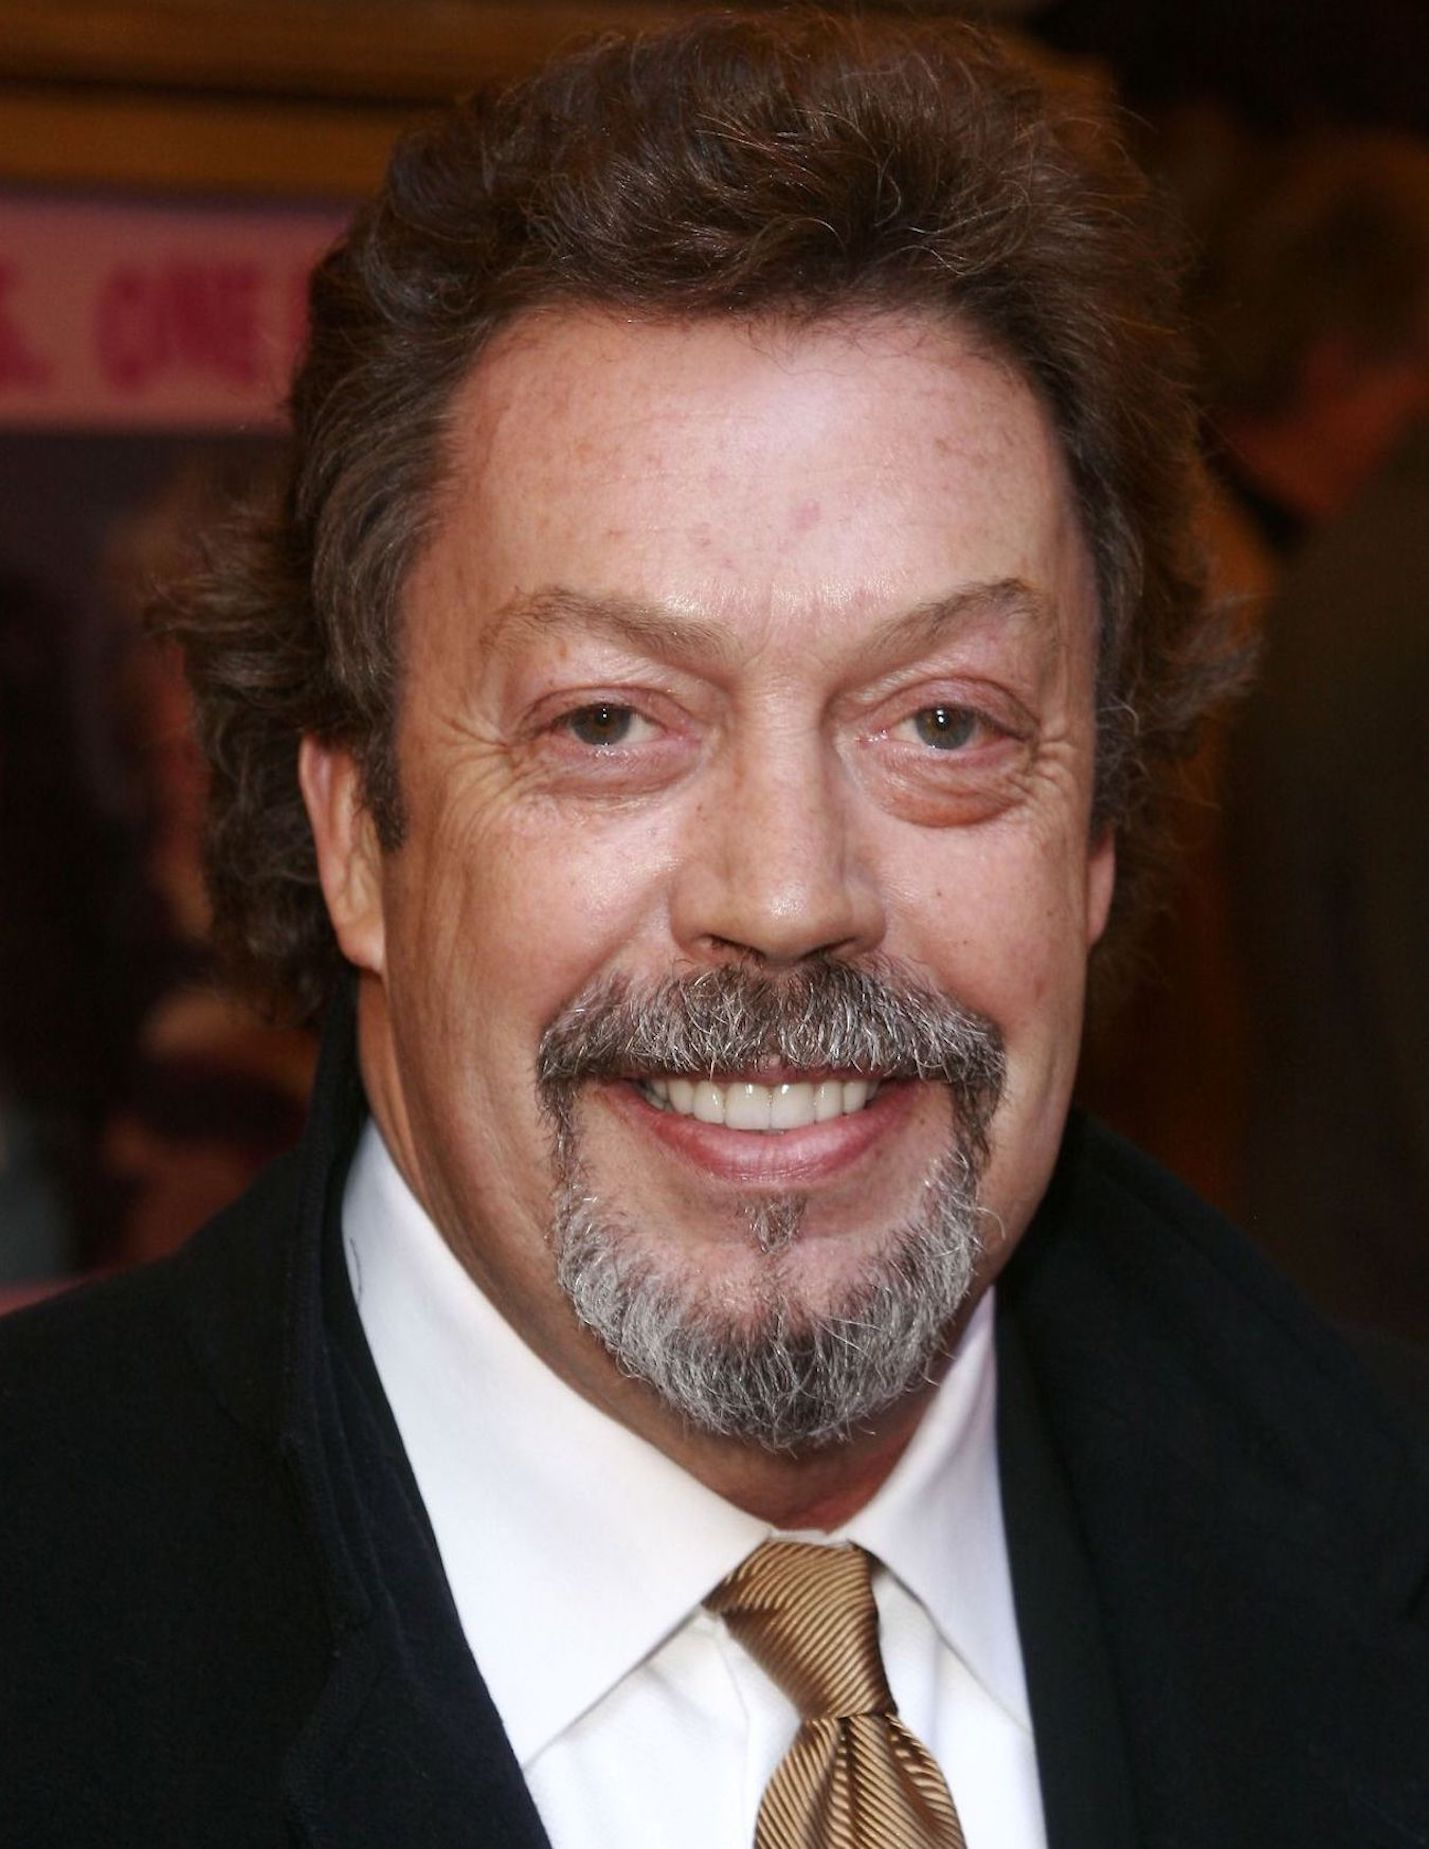 underwear Tim Curry (born 1946) naked photo 2017